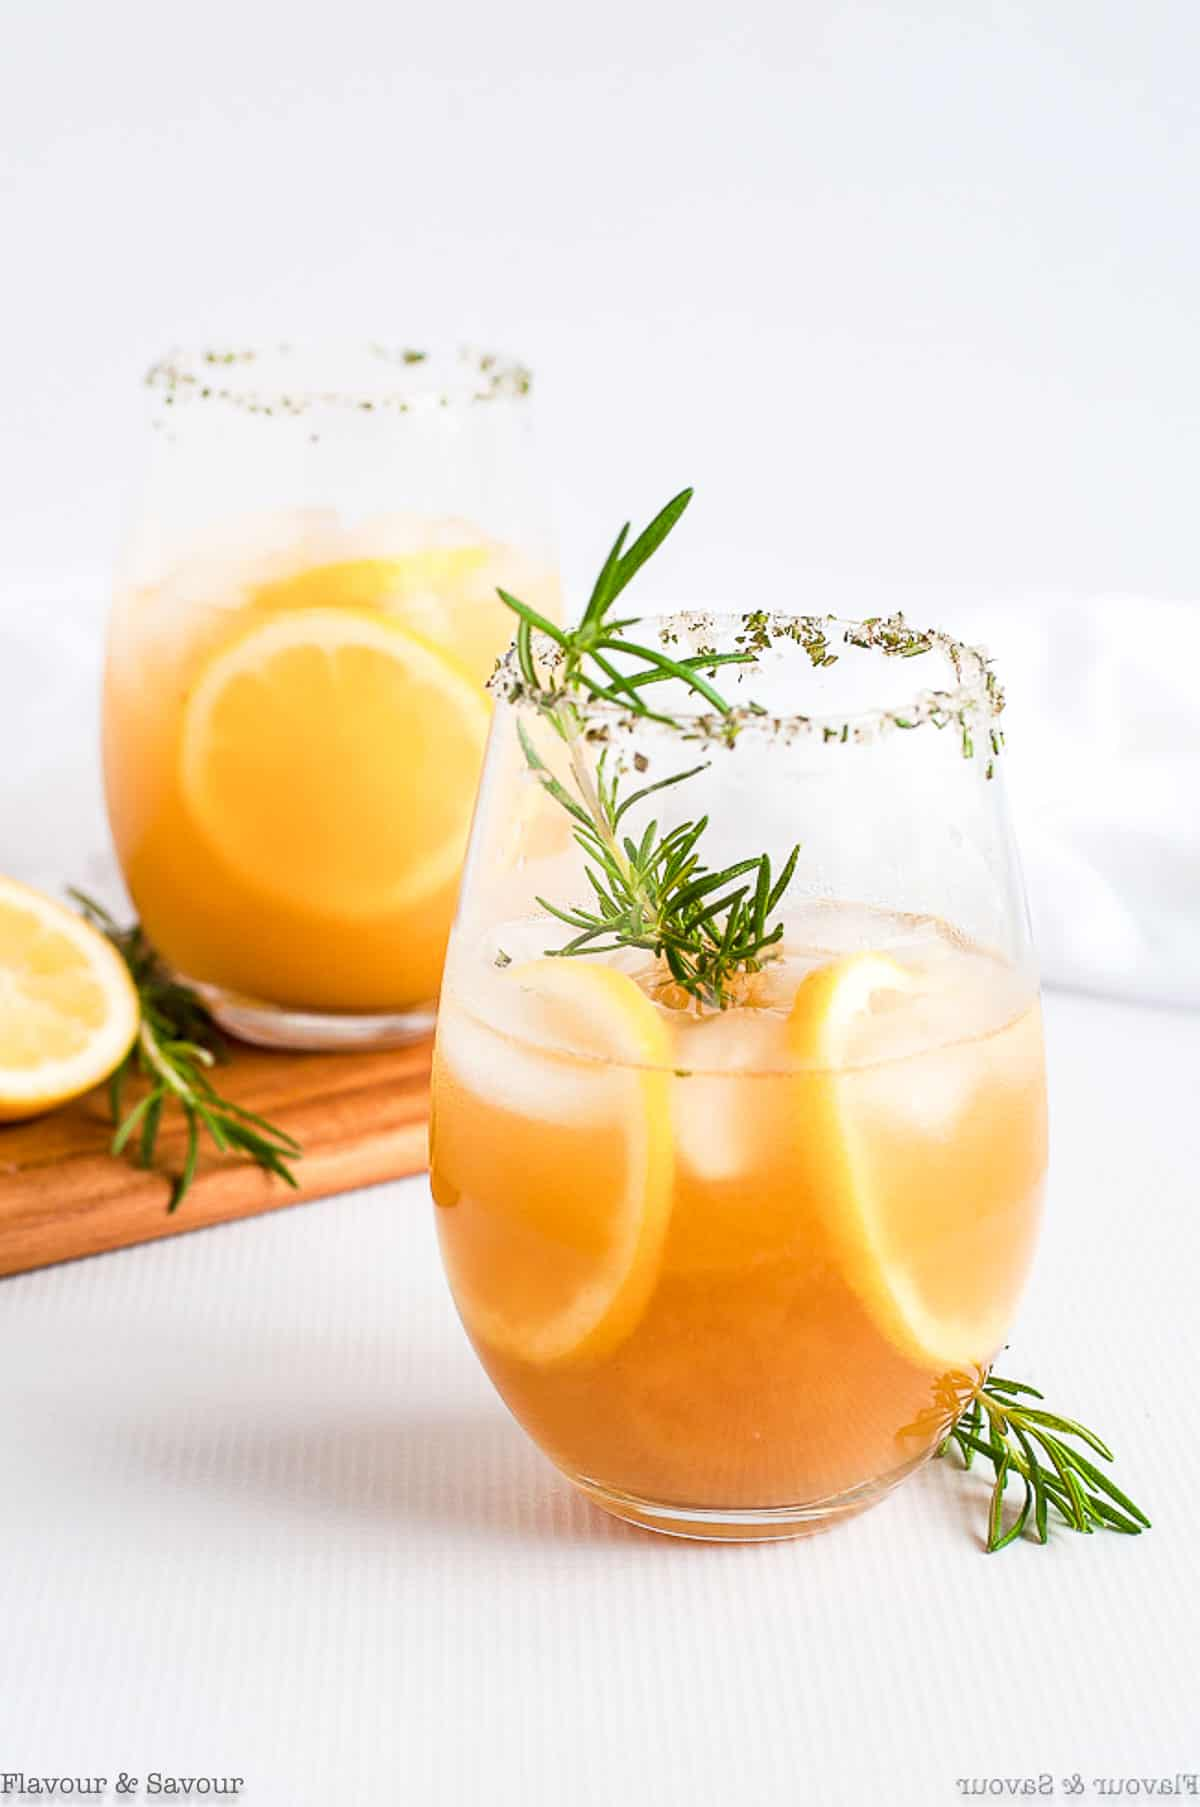 A glass of Pineapple Ginger Kombucha Cocktail garnished with rosemary